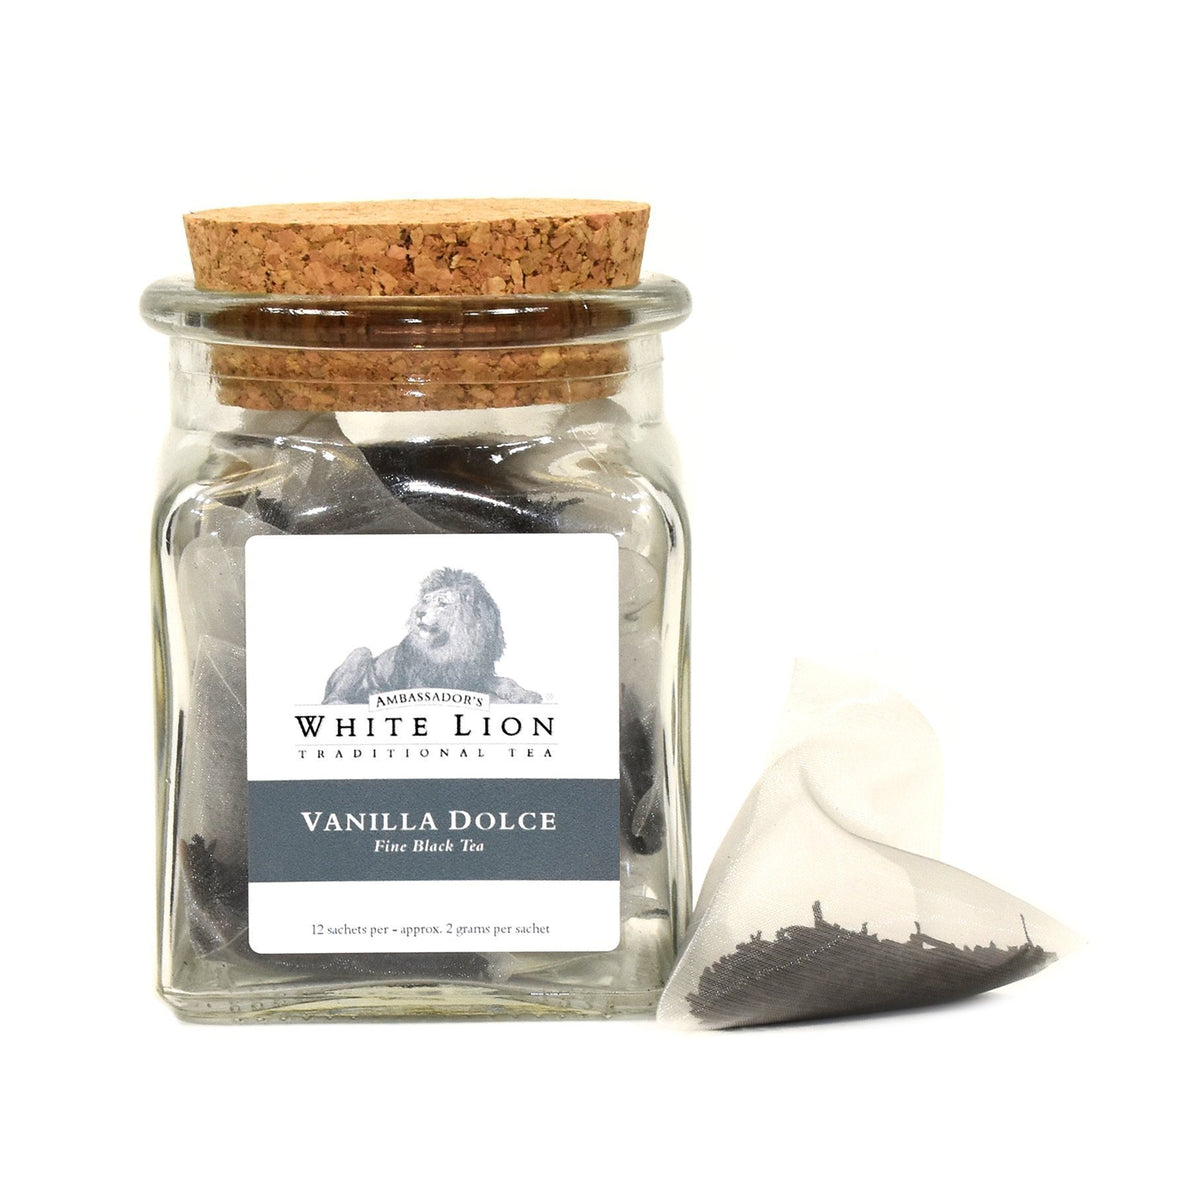 White Lion Vanilla Dolce Tea Jar 12 Ct.